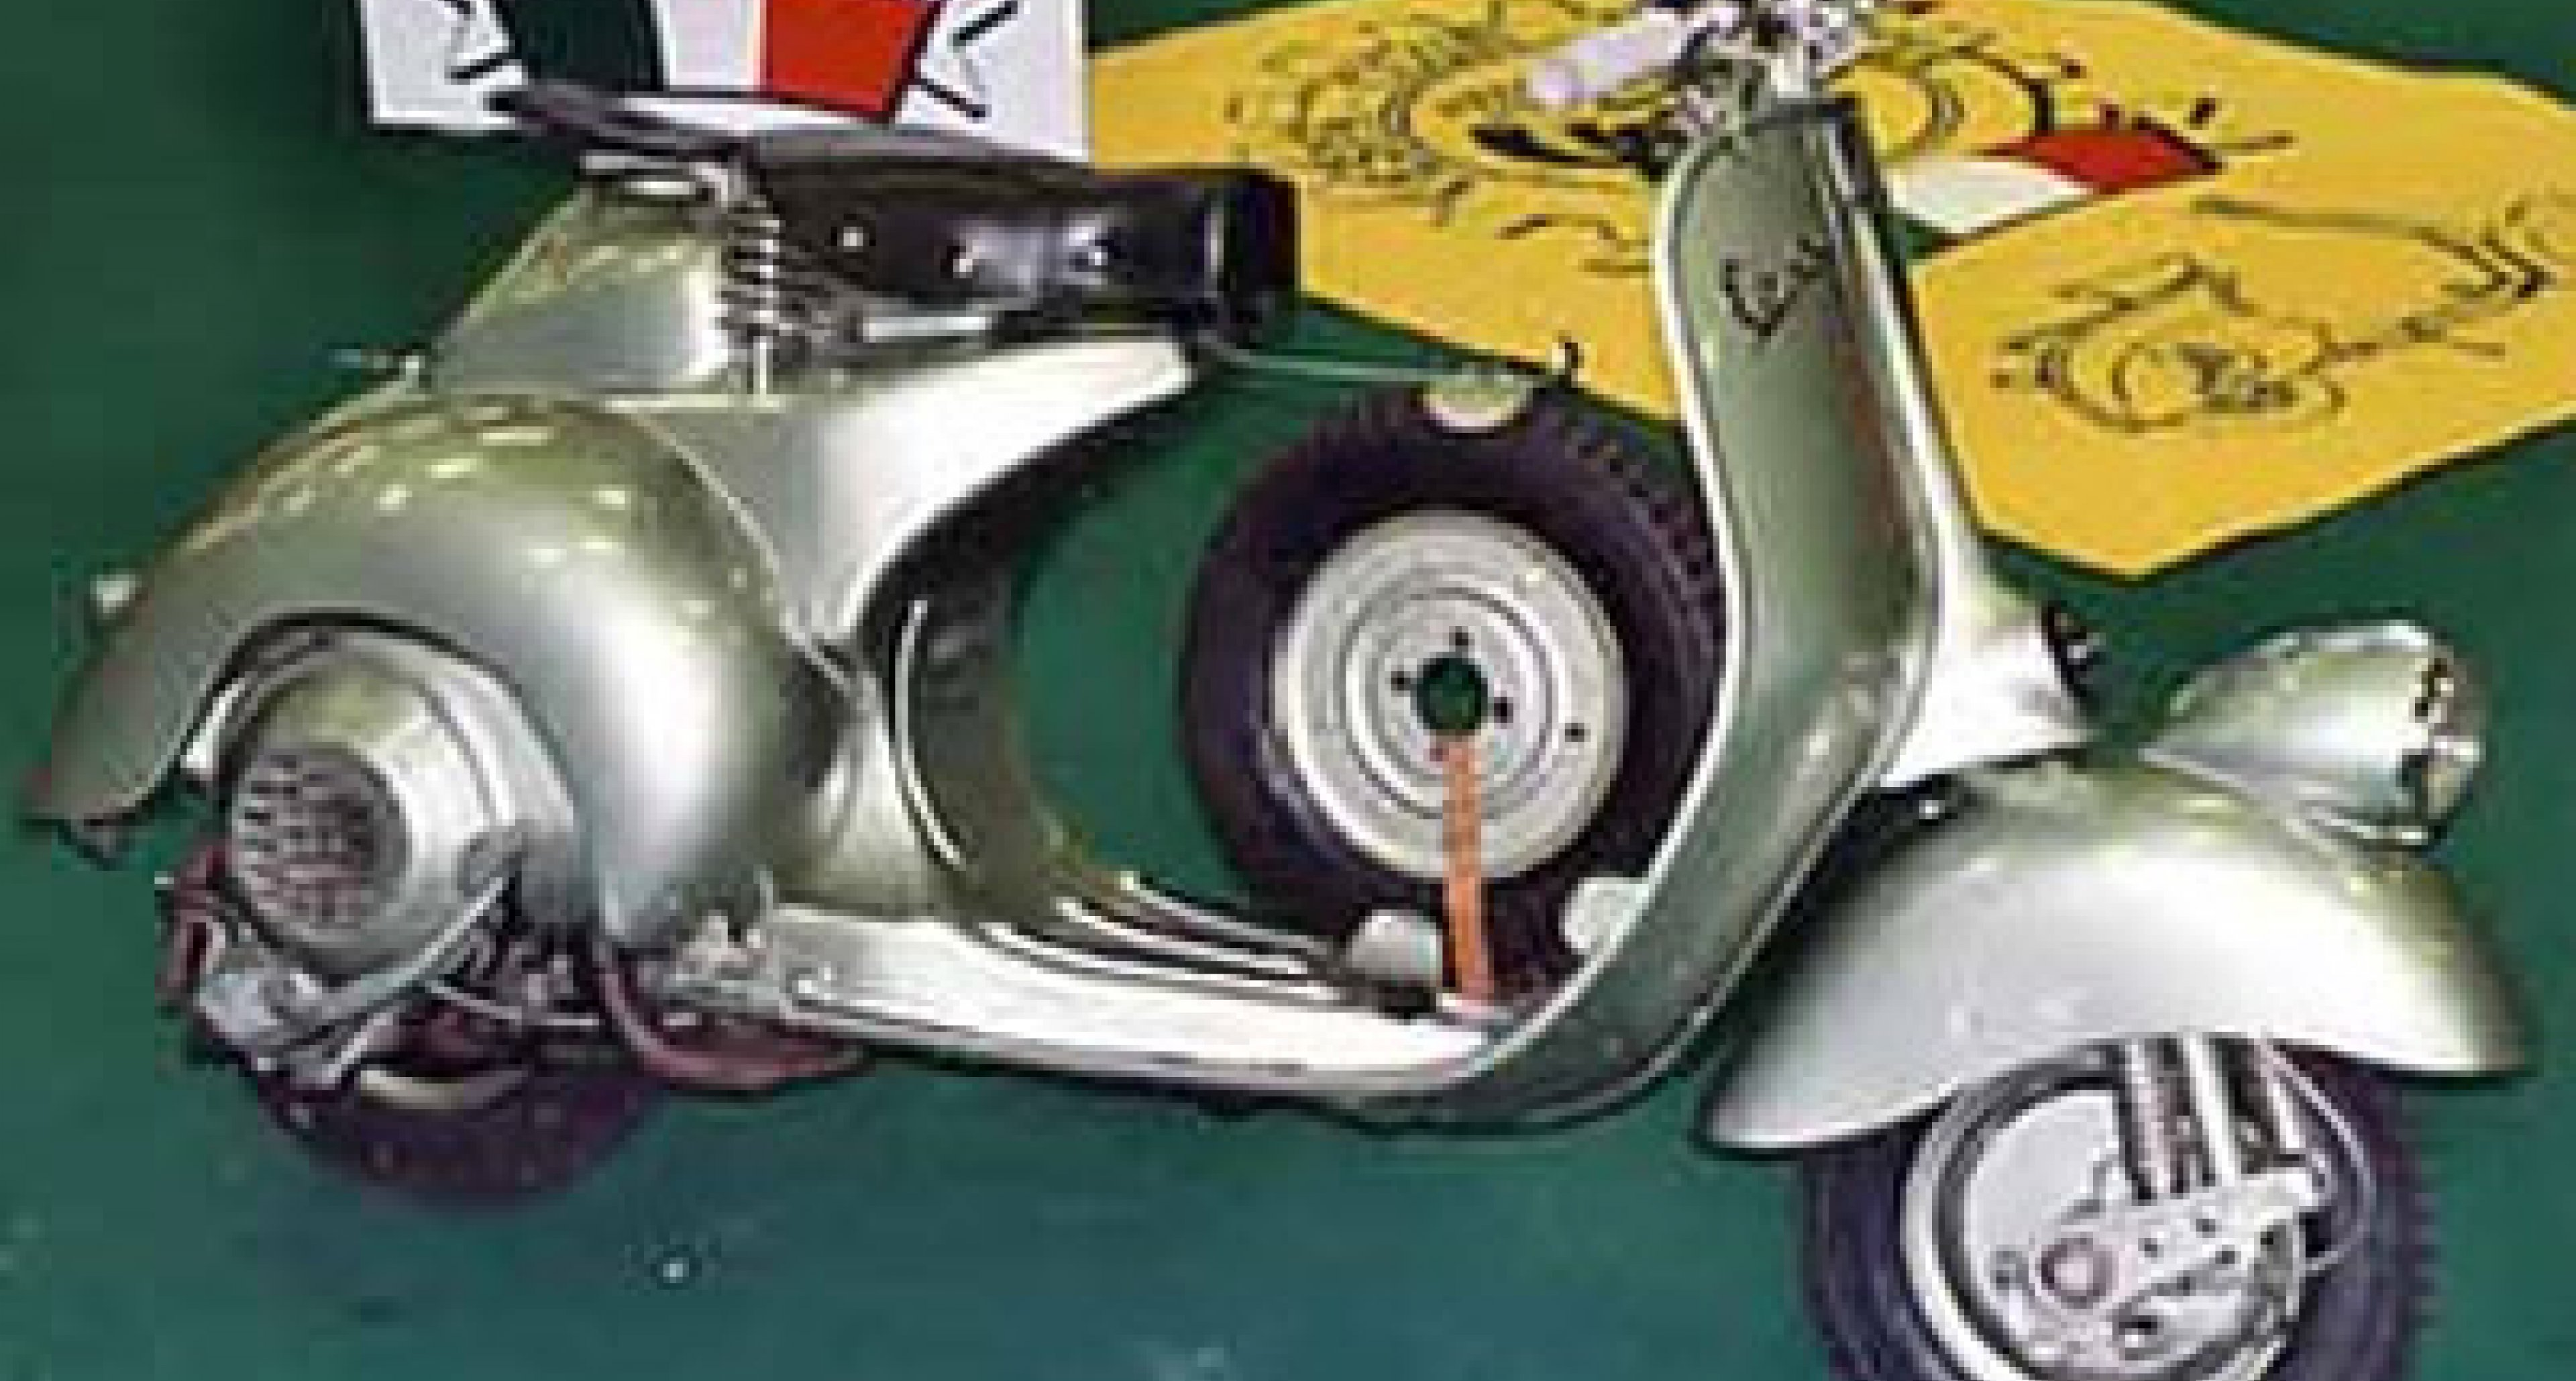 Vintage cars and motorcycles – Padua Exhibition Centre from 22nd to 23rd November 2003